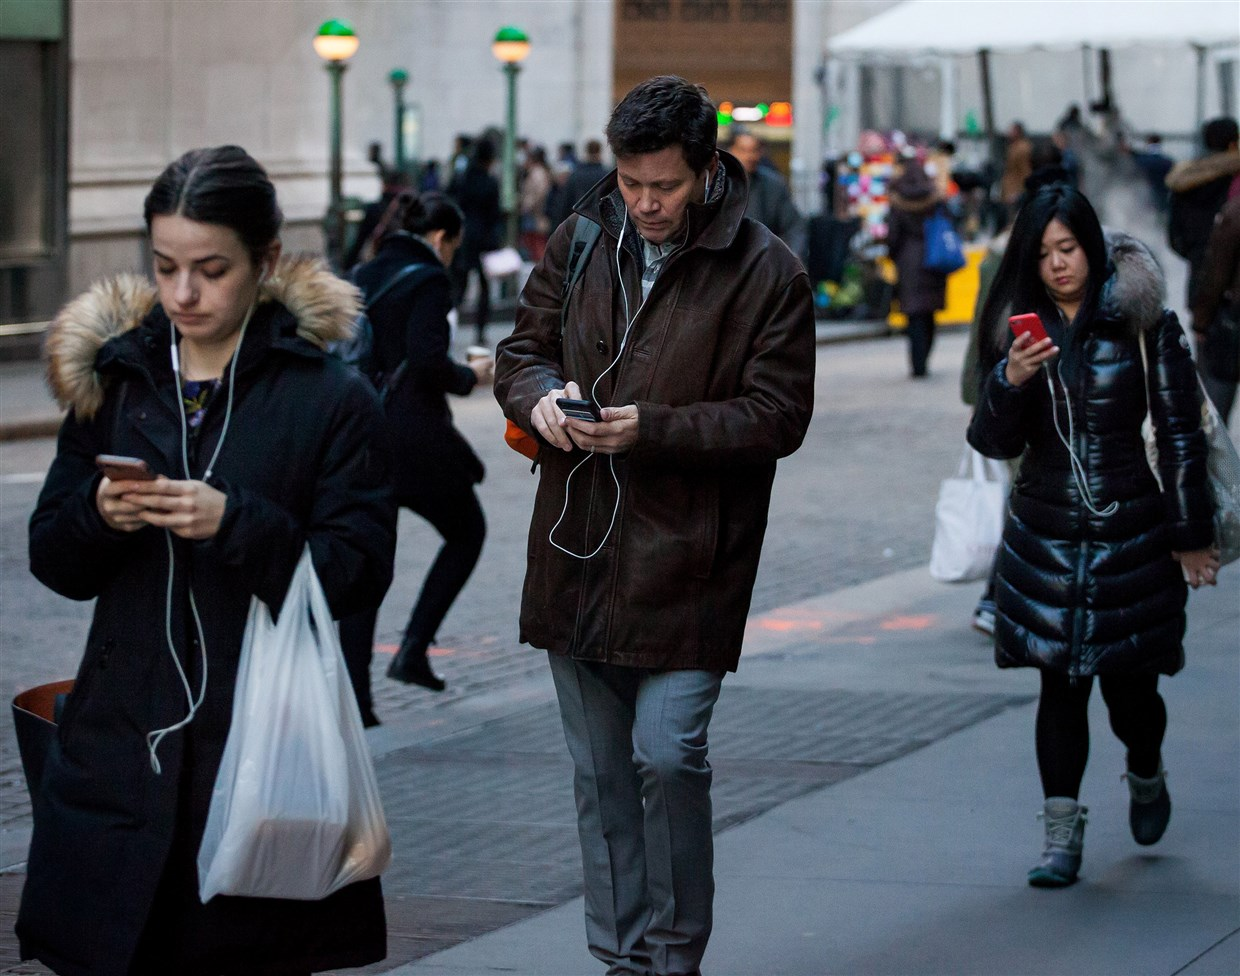 Cellphone-related head and neck injuries on the rise, study says